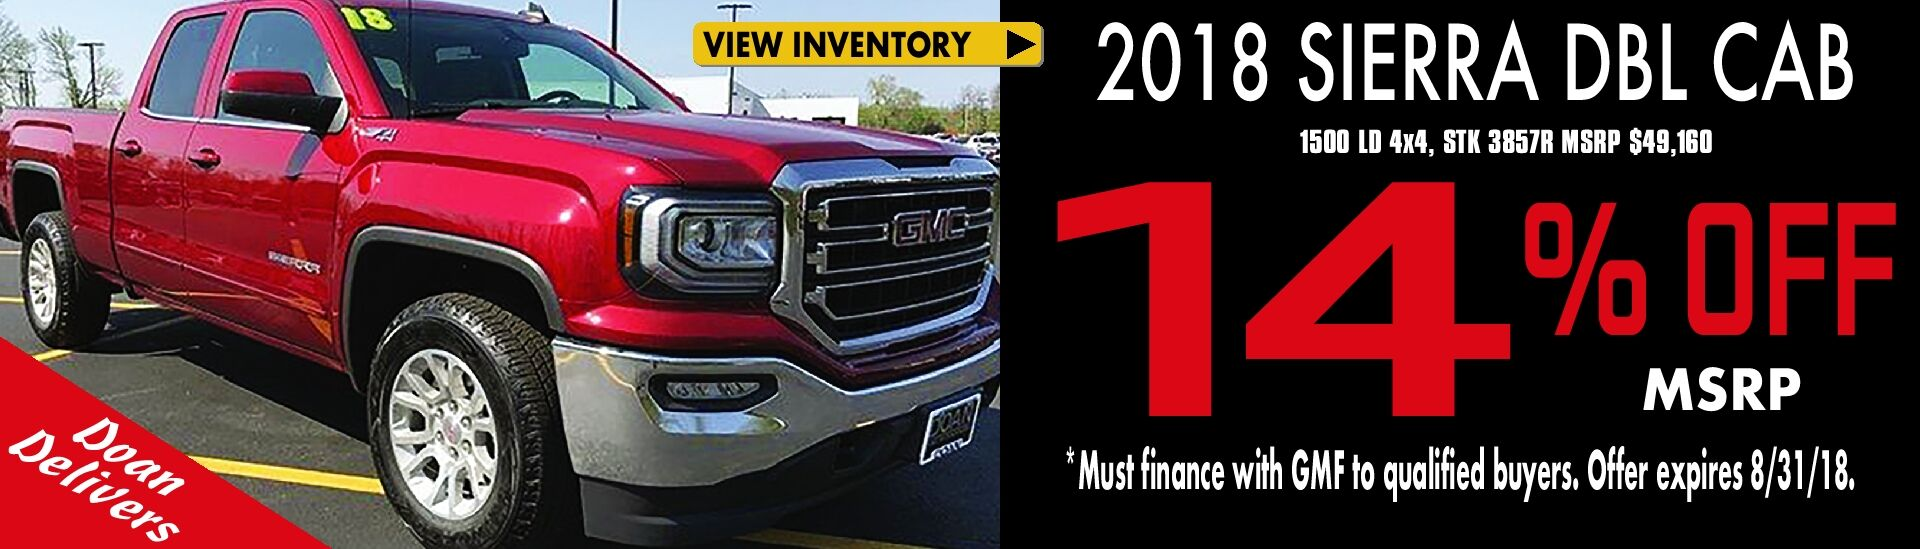 Up to 14% off MSRP on '18 Sierra Dbl Cabs!